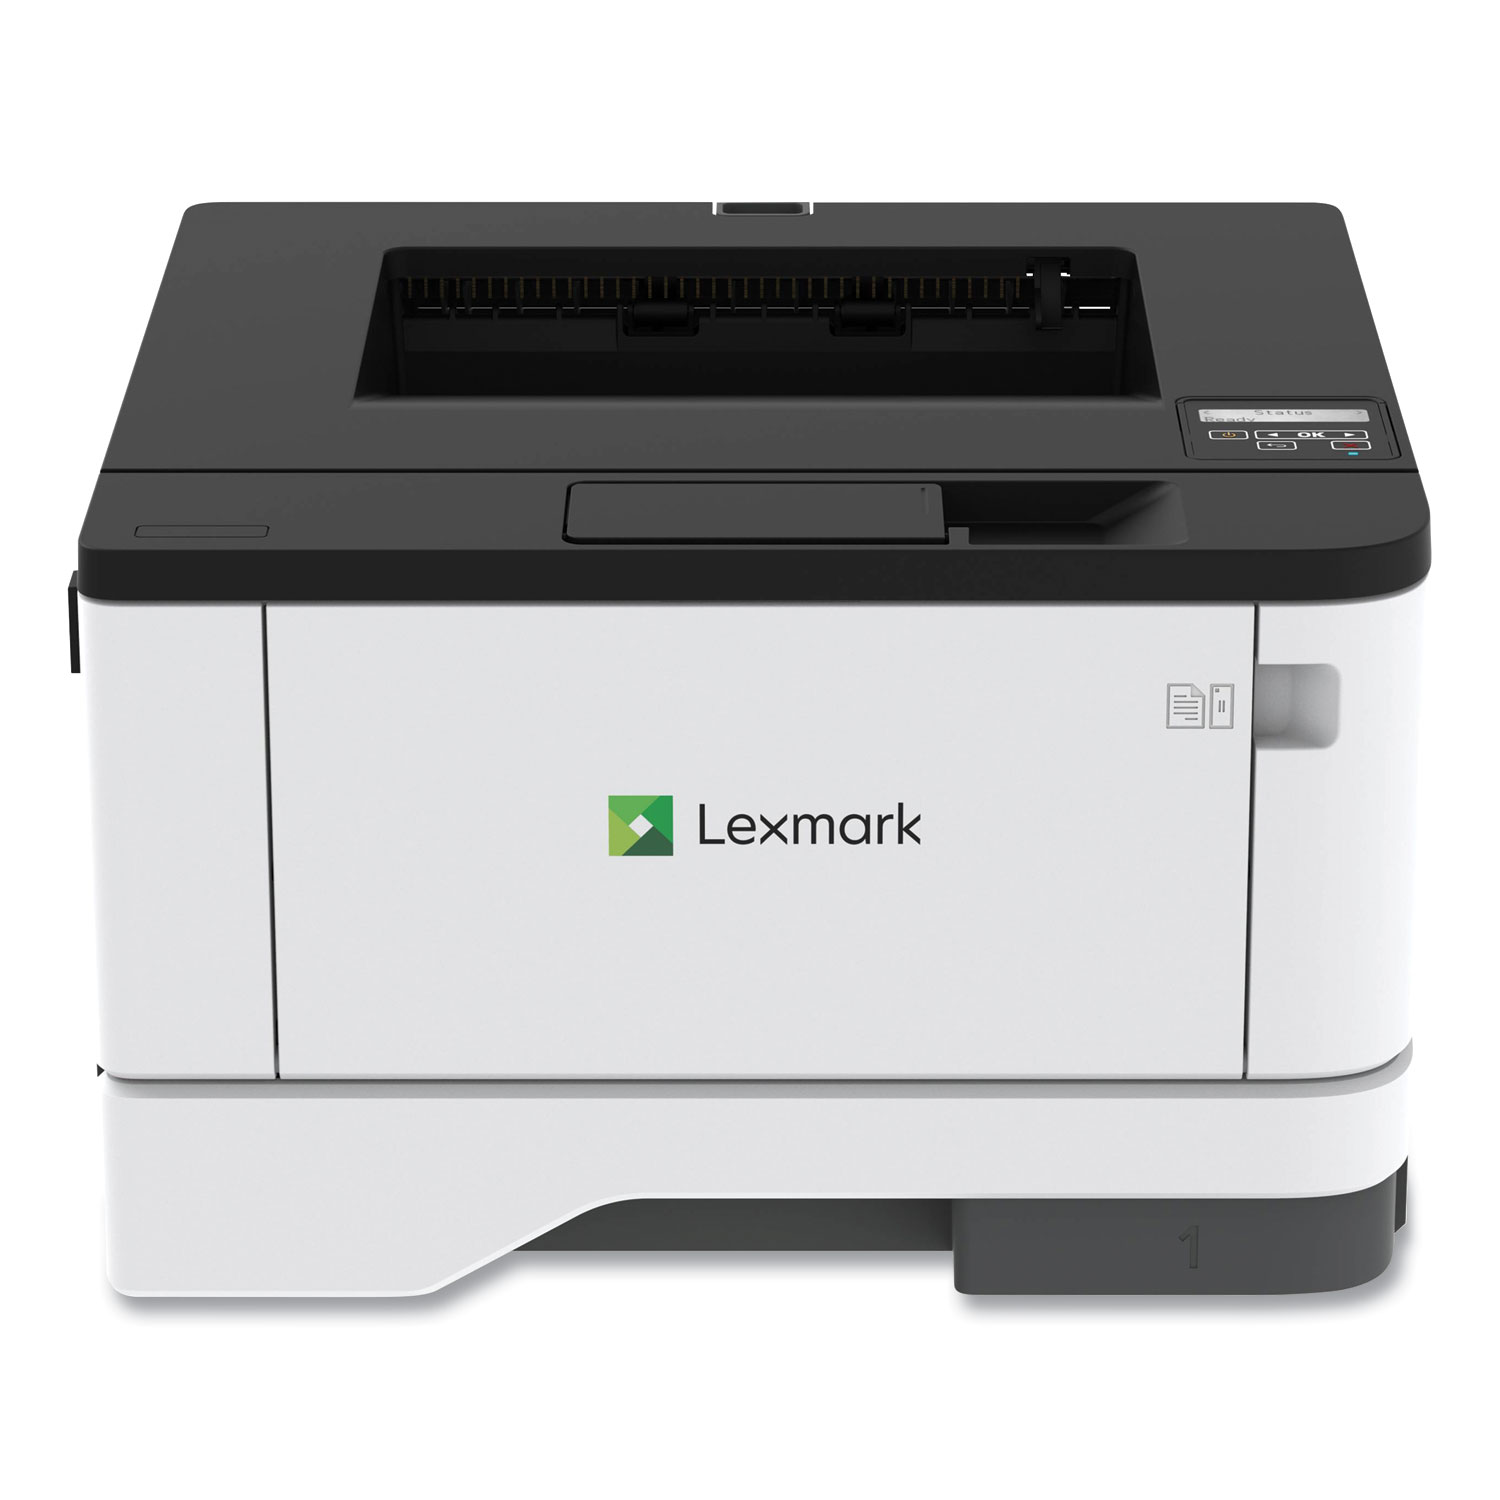 MS431dn Laser Printer